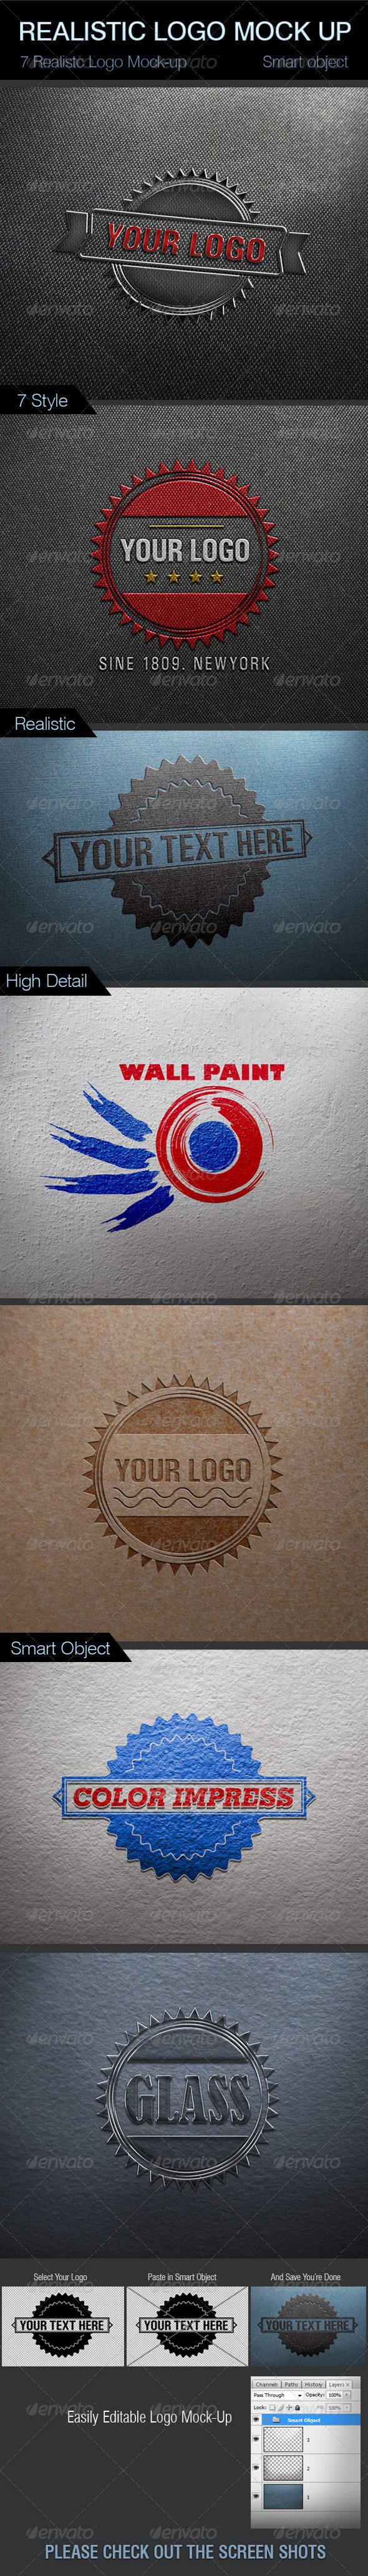 Realistic Logo Mock-Up - Logo Product Mock-Ups